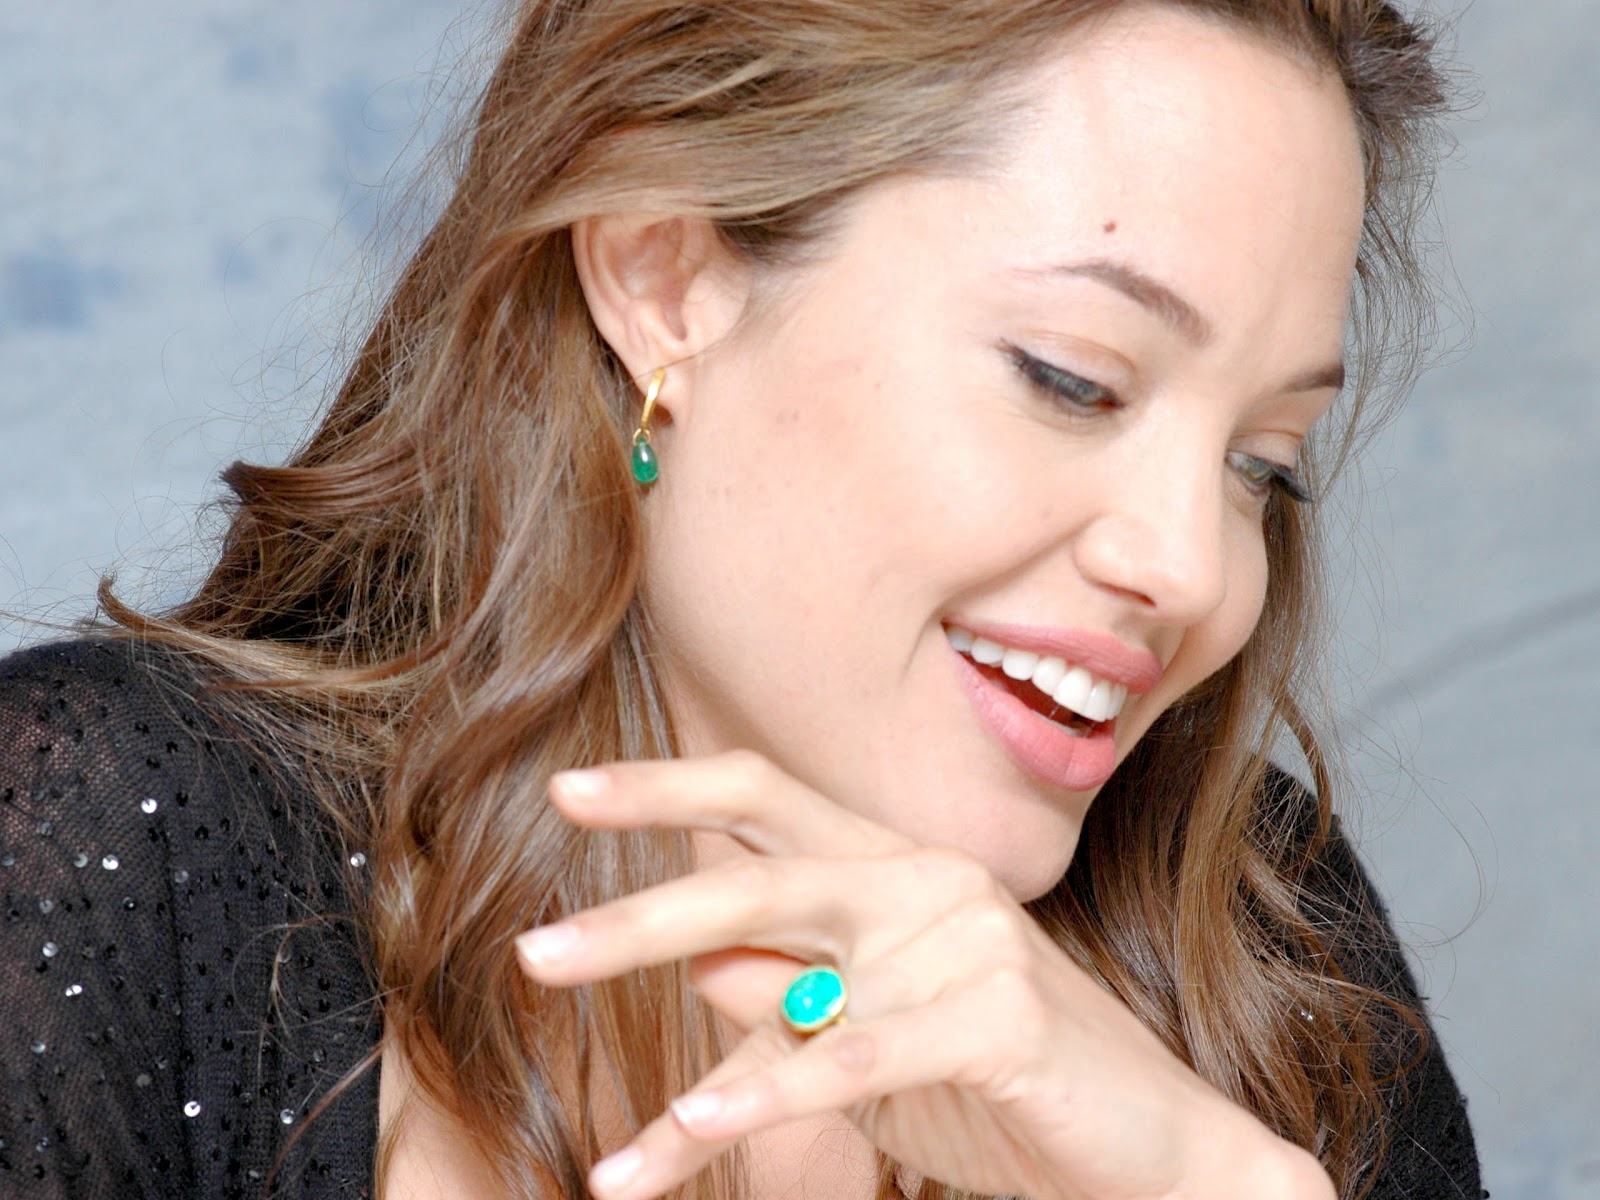 http://4.bp.blogspot.com/-UaimNg6wyY4/UE8s5JdHIKI/AAAAAAAAAfA/JJmIkOxDabg/s1600/Angelina_Jolie_With_smile_And_Ring.jpg